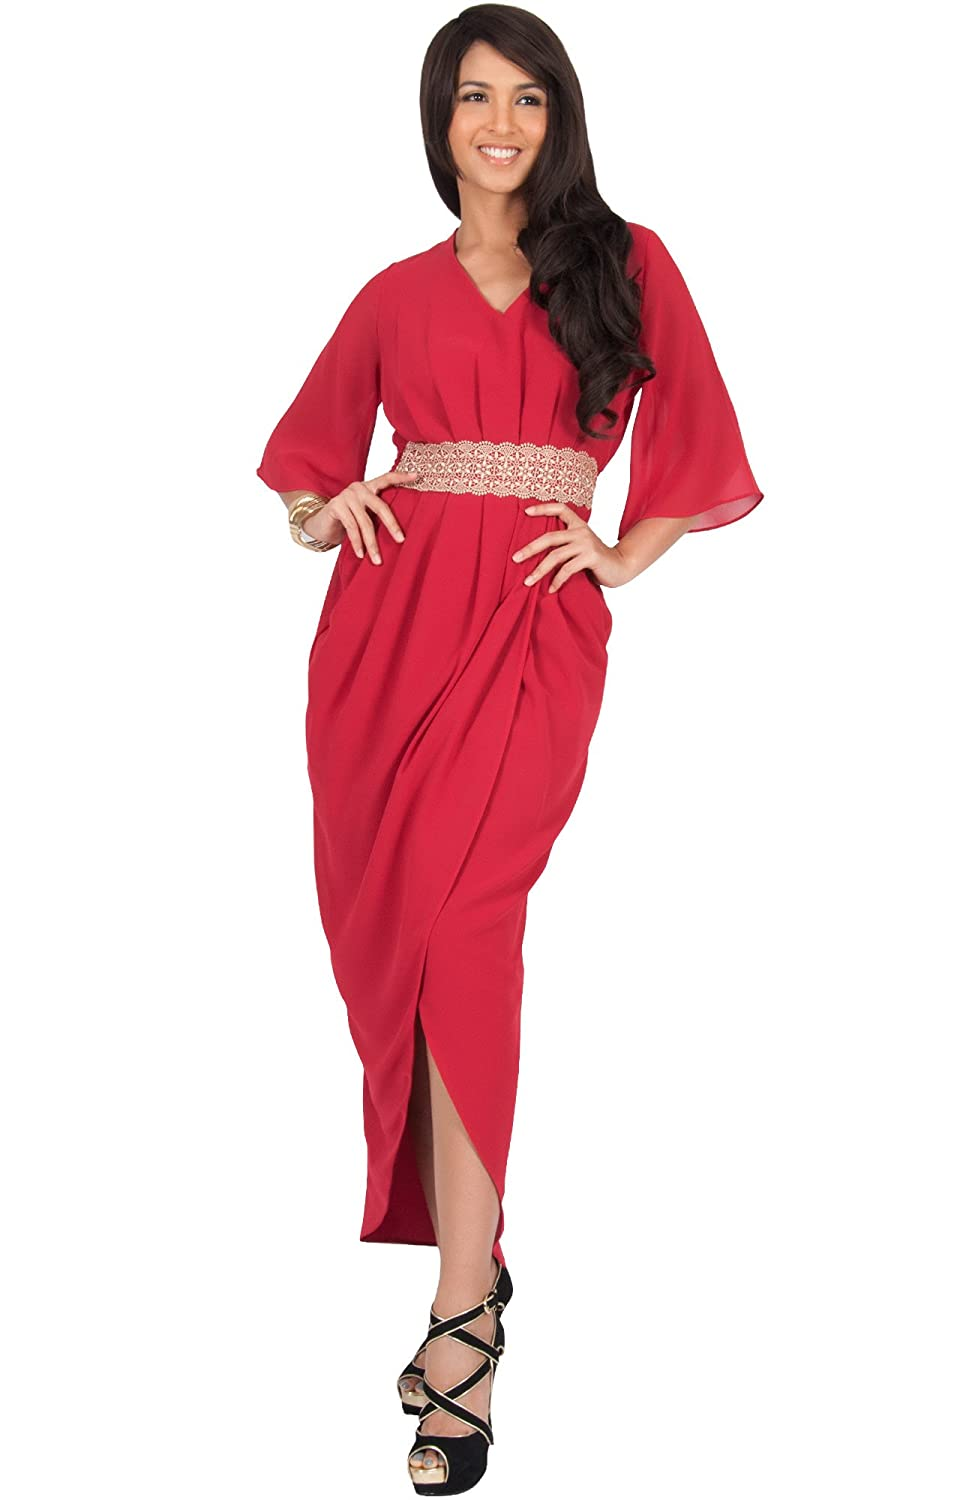 621dbb0da99b6 GARMENT CARE - Hand or machine washable. Can be dry-cleaned if desired.  PLUS SIZE - This great maxi dress design is also available in plus sizes.